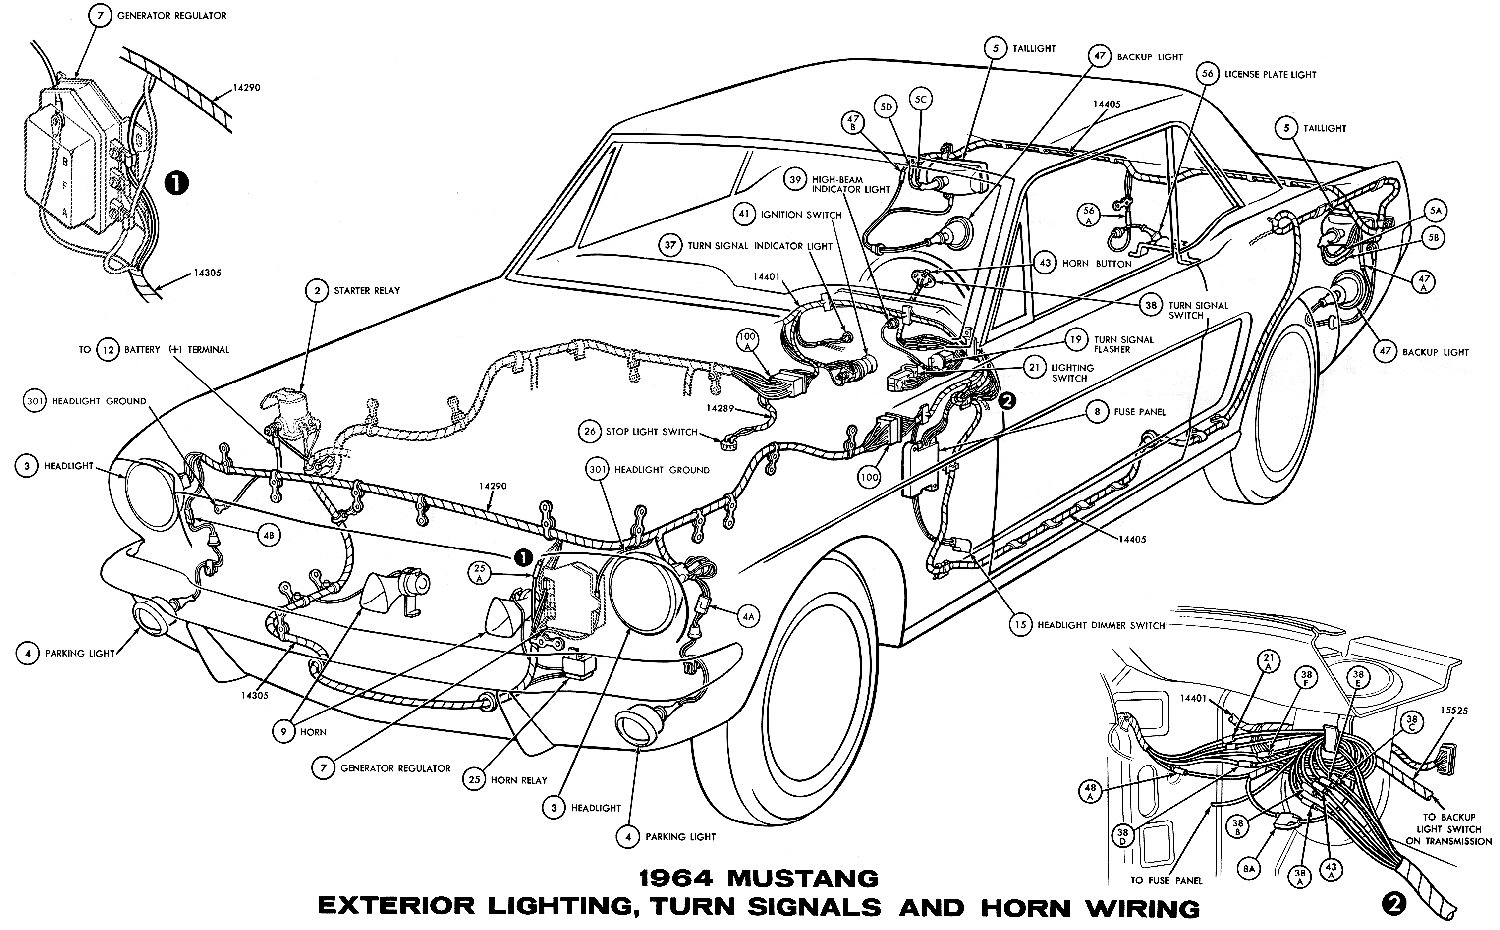 1964h 1964 mustang wiring diagrams average joe restoration 65 mustang fuse box location at eliteediting.co